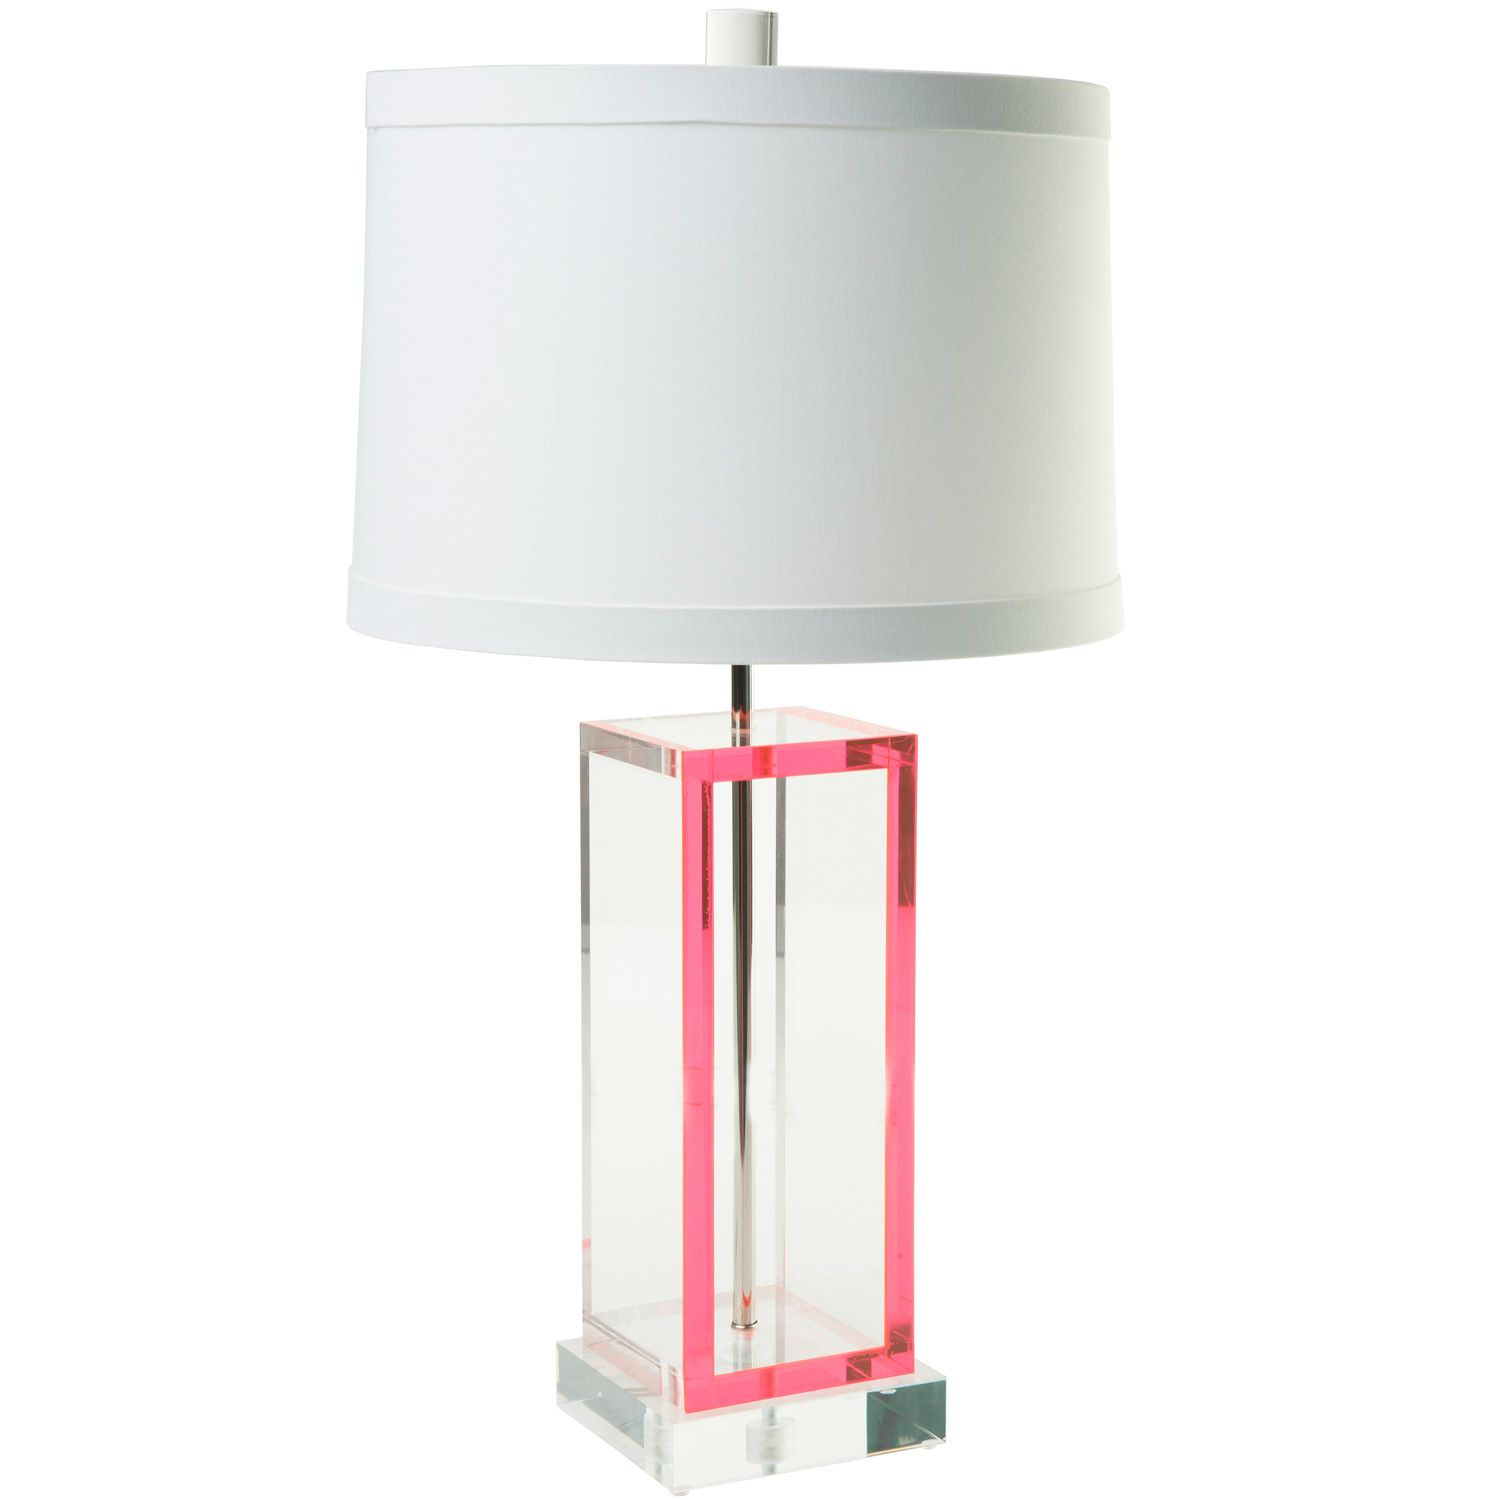 Times Two Design Acrylic Neon Pink Acrobat Table Lamp Base